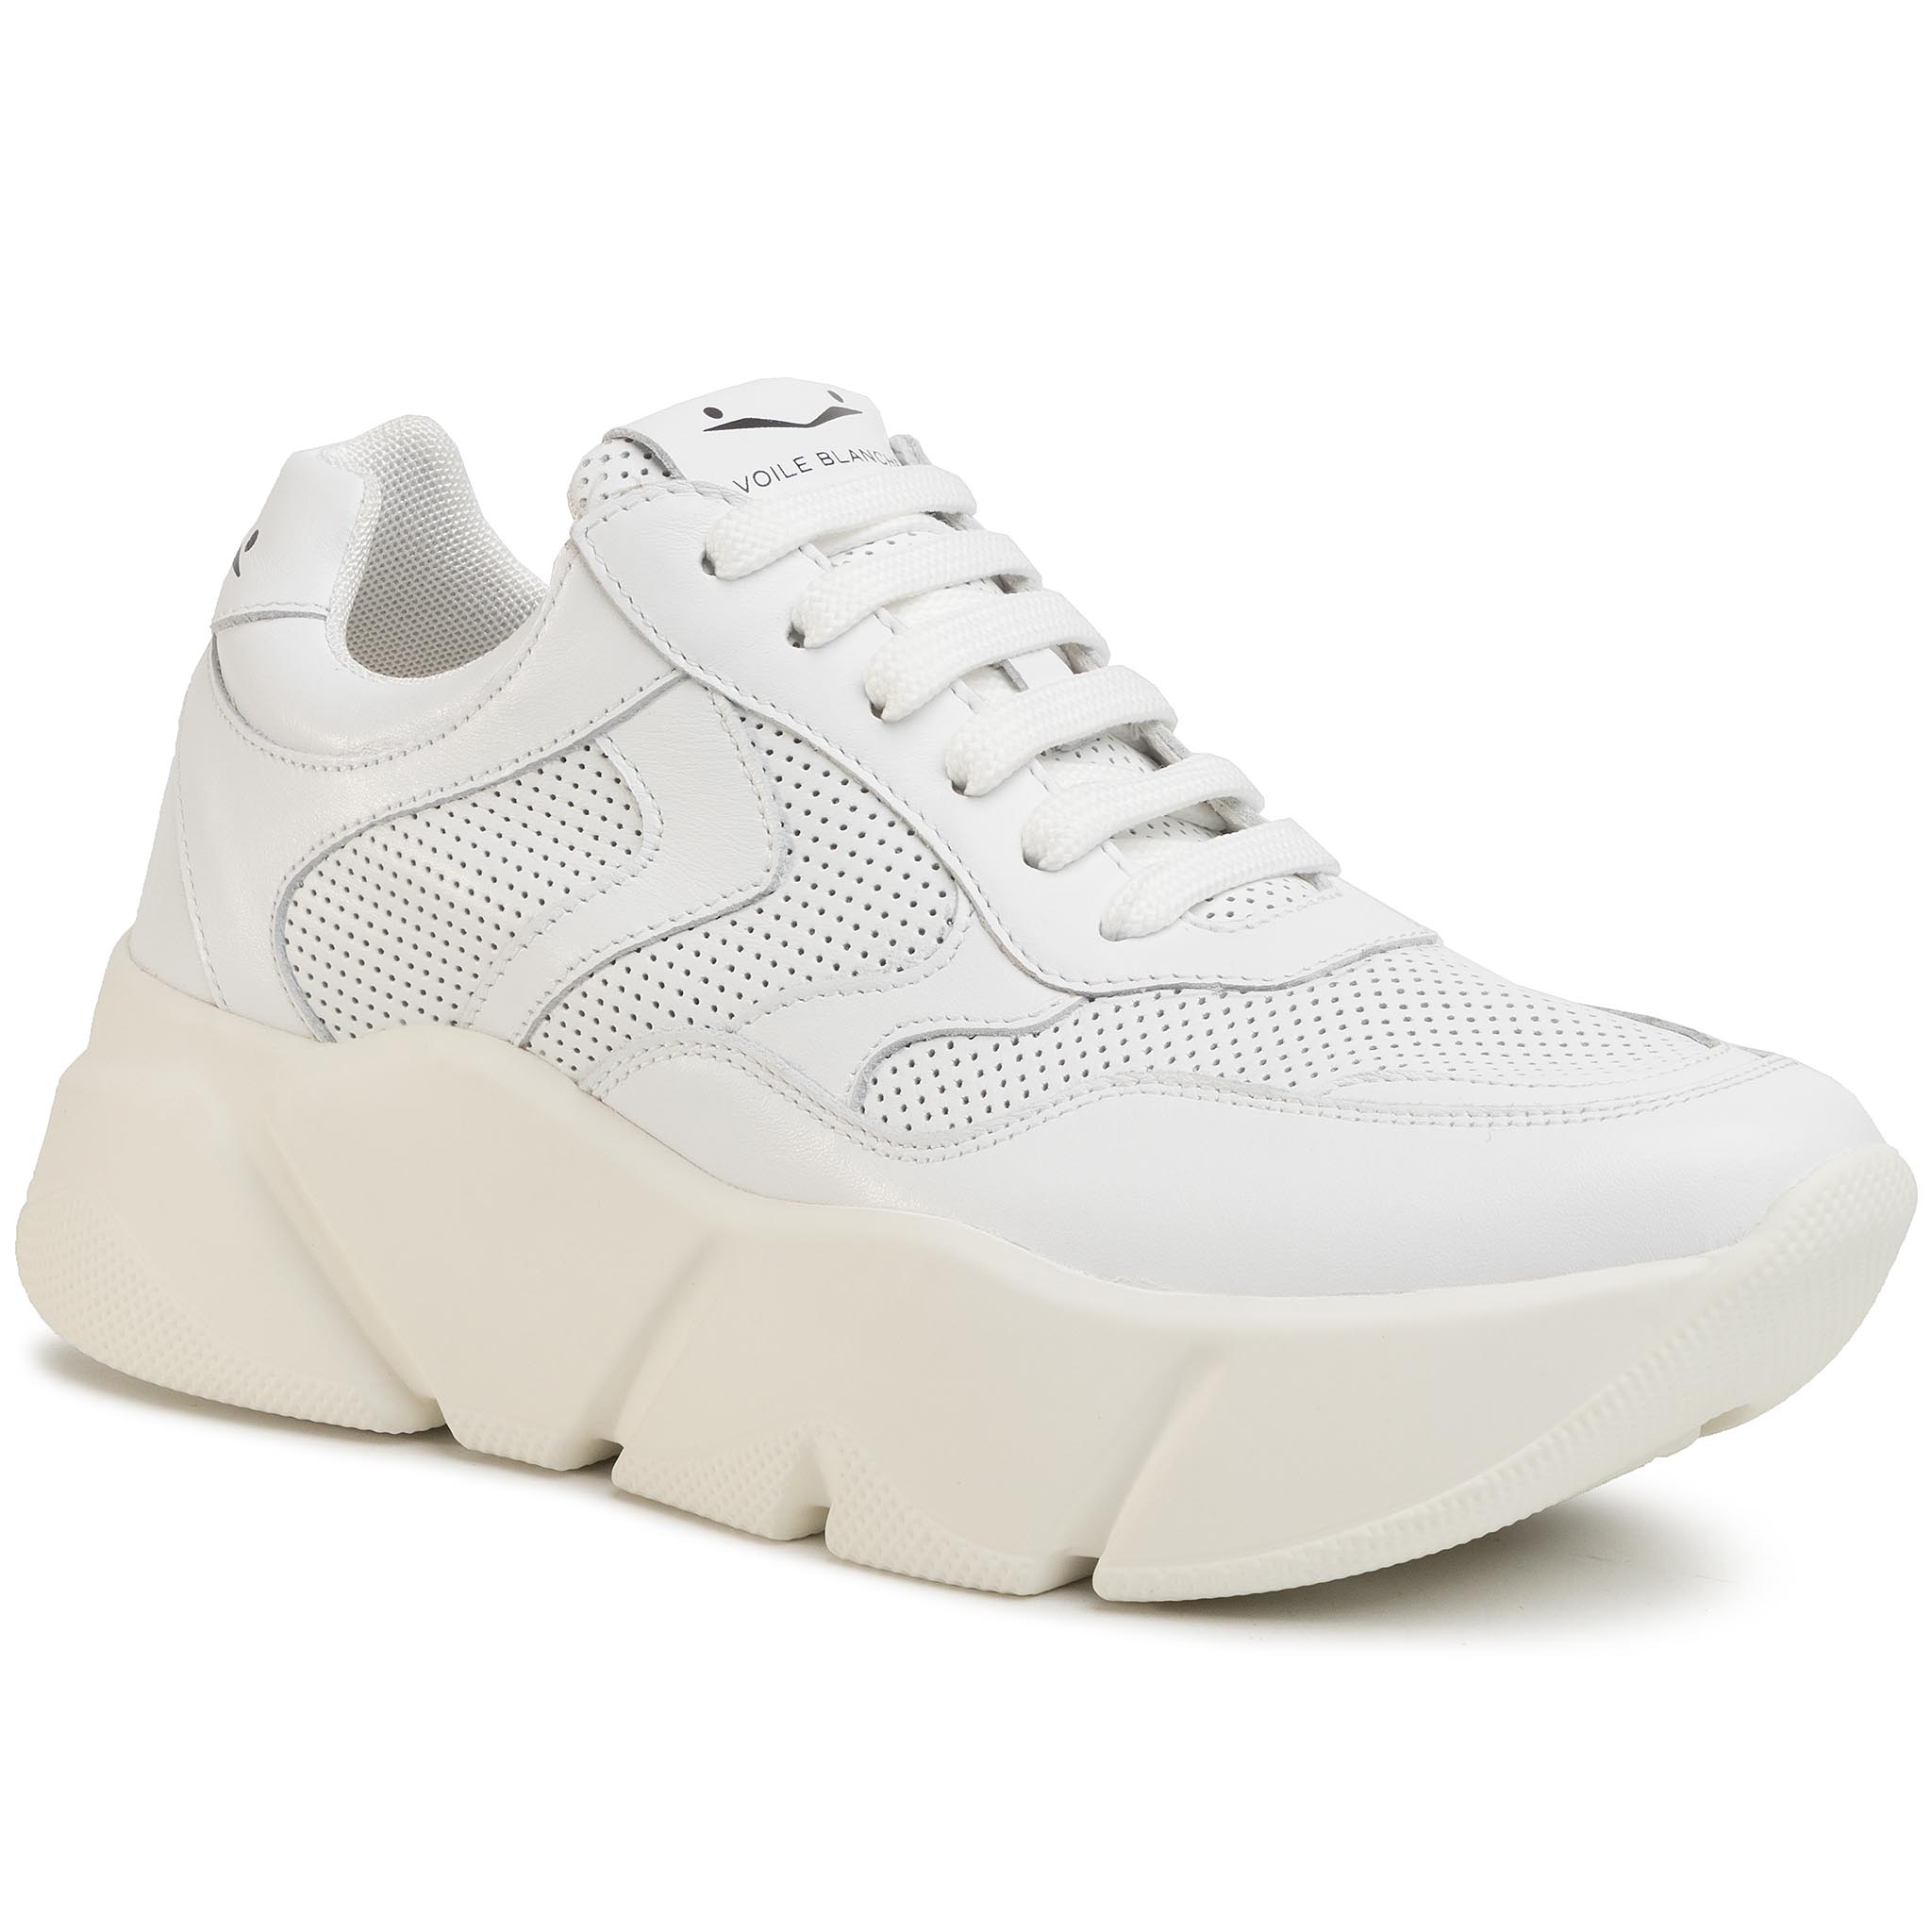 Sneakers VOILE BLANCHE - Monster 0012013532.02.0N01 Bianco